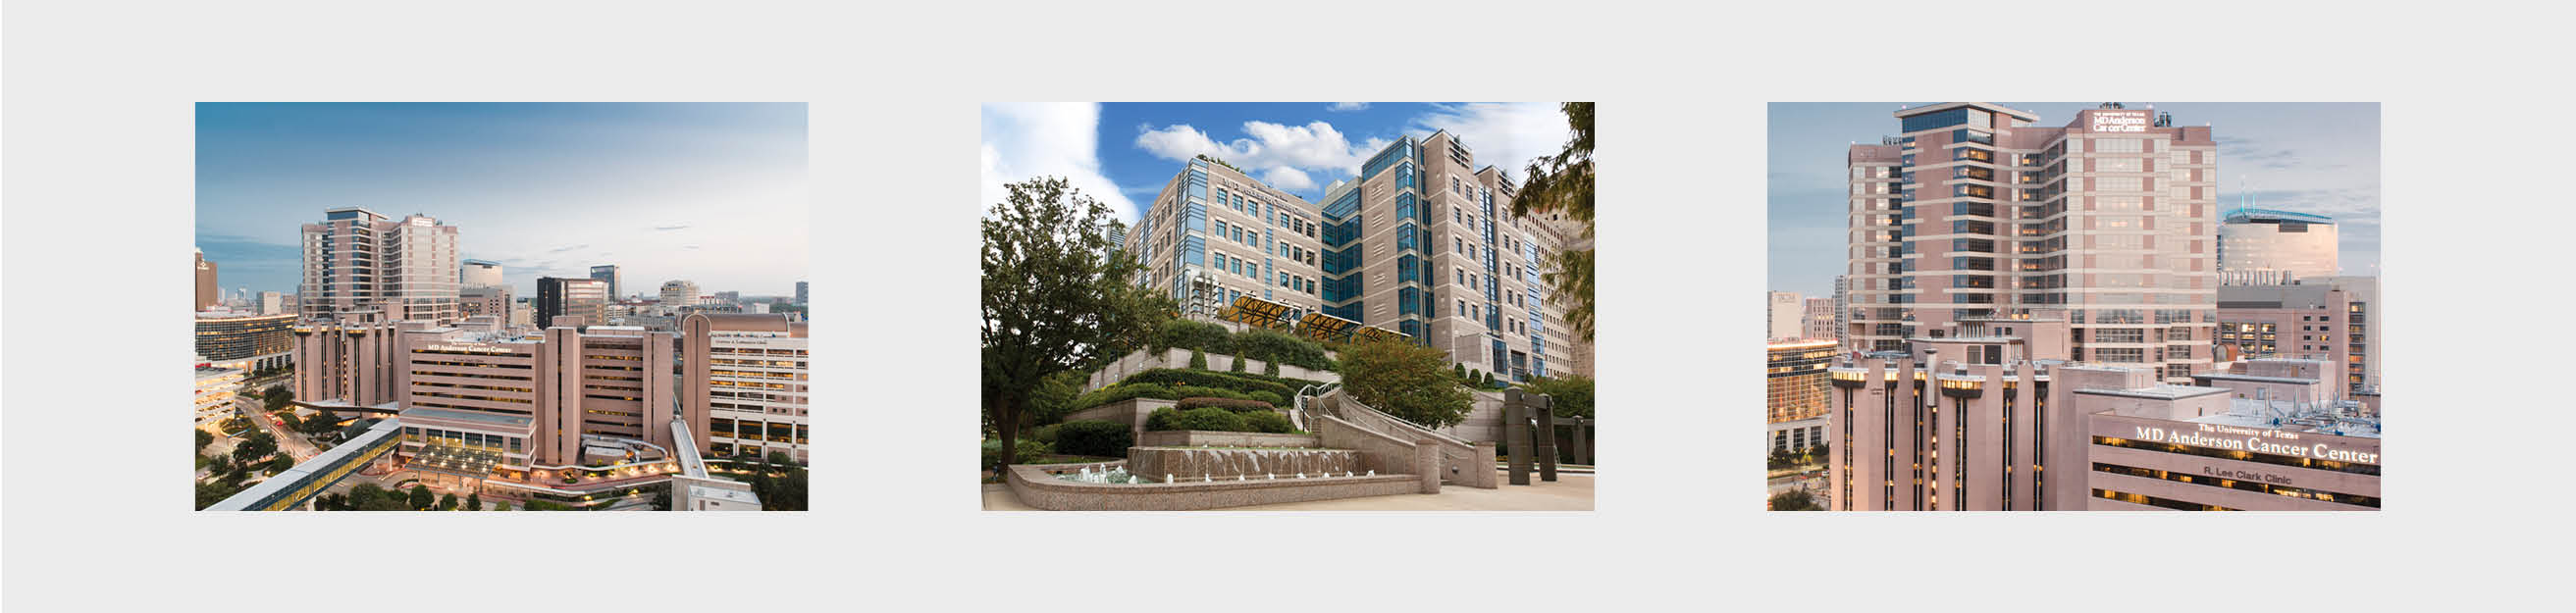 MD Anderson Images